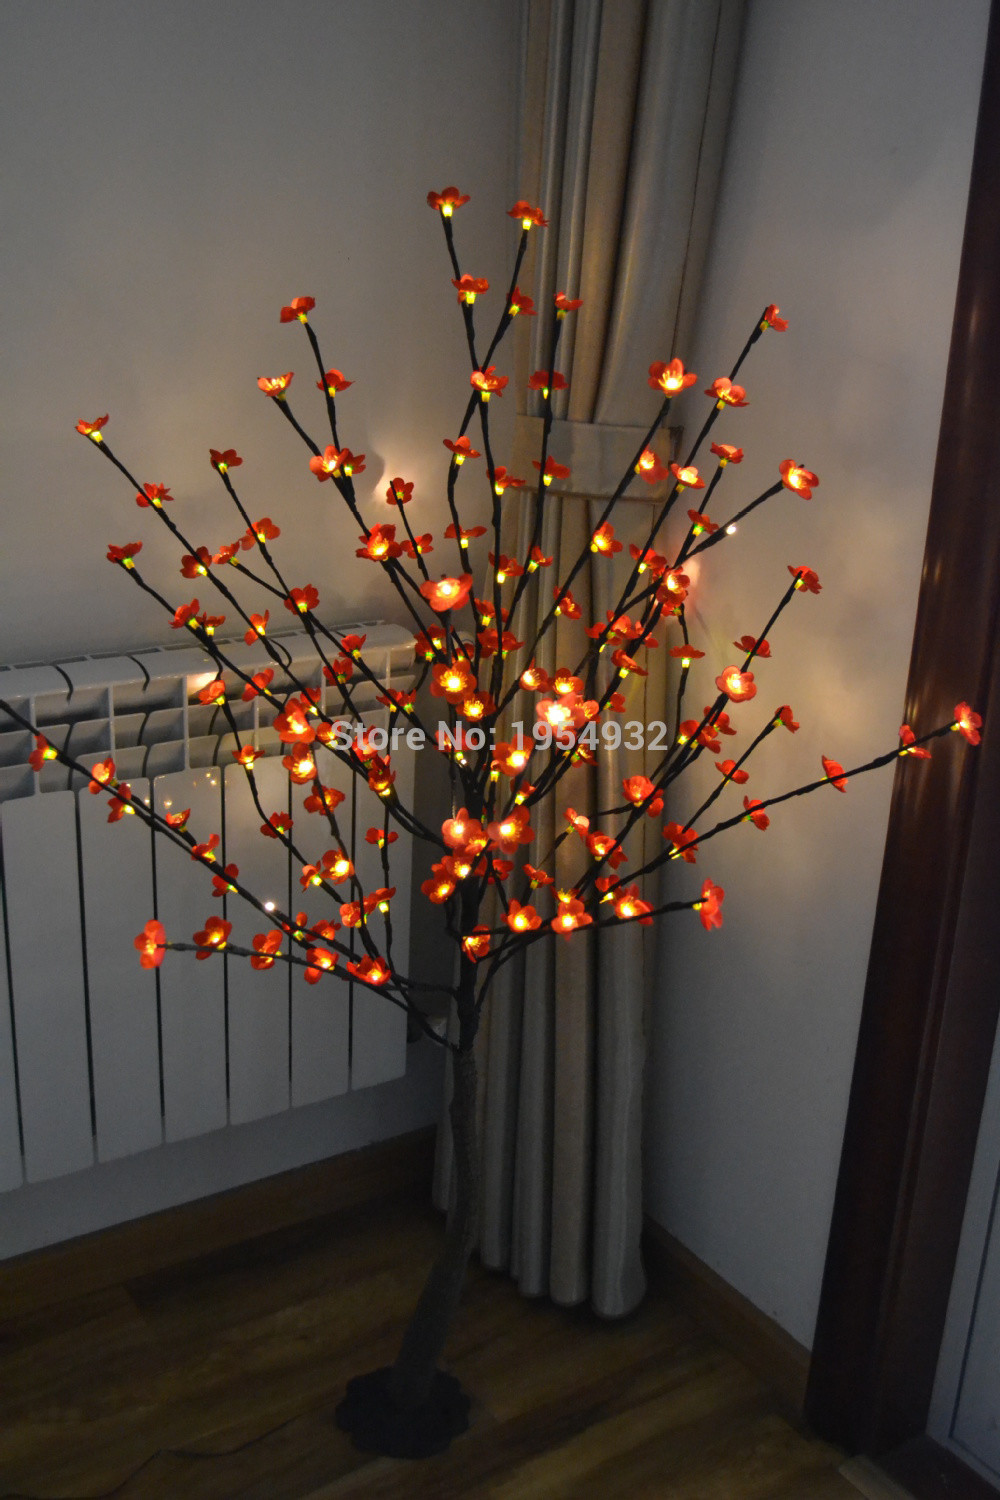 led branch lights in vase of best 52 blossom plum cherry led tree light in 3v voltage with base within free shipping 52 160pcs blossom plum cherry led tree light in 3v voltage with base branch tree light with blossome